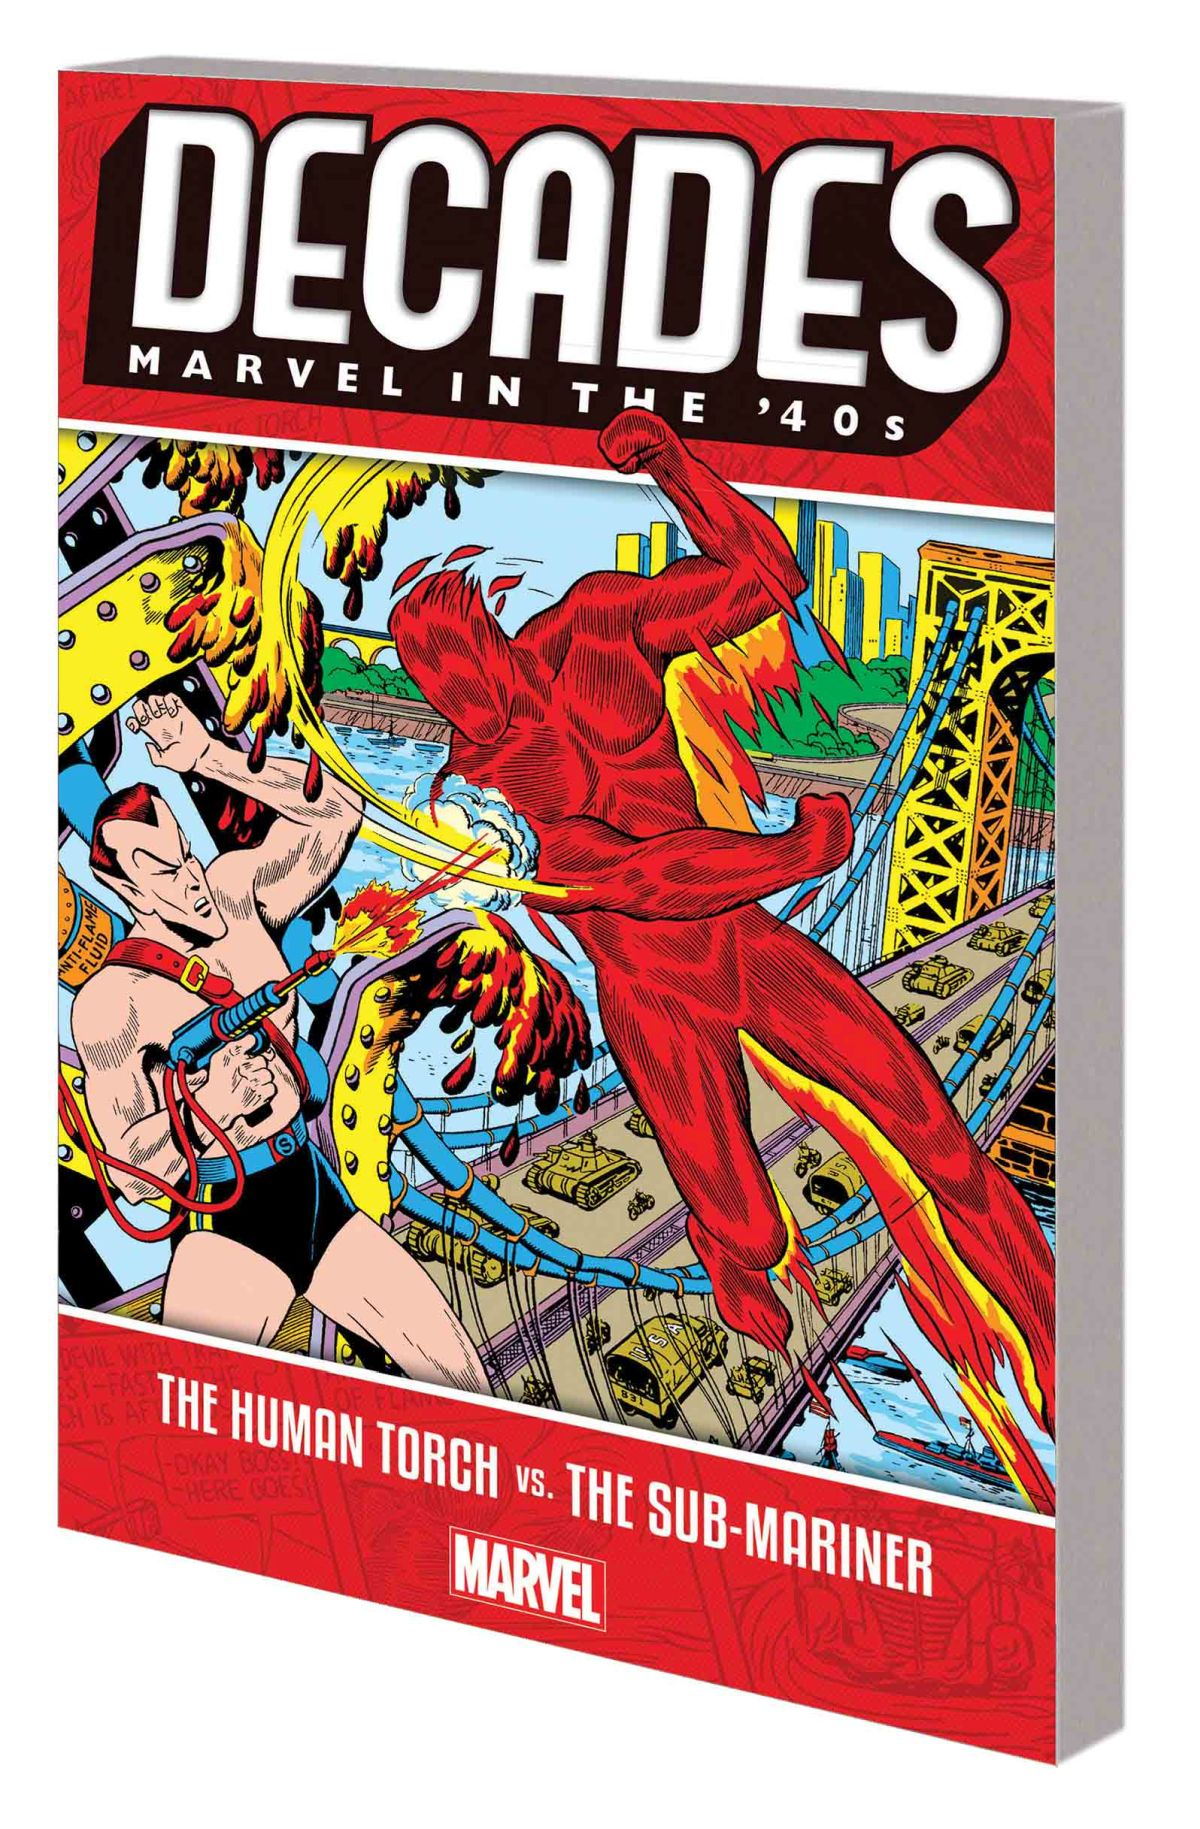 DECADES: MARVEL IN THE '40S — THE HUMAN TORCH VS. THE SUB-MARINER TPB